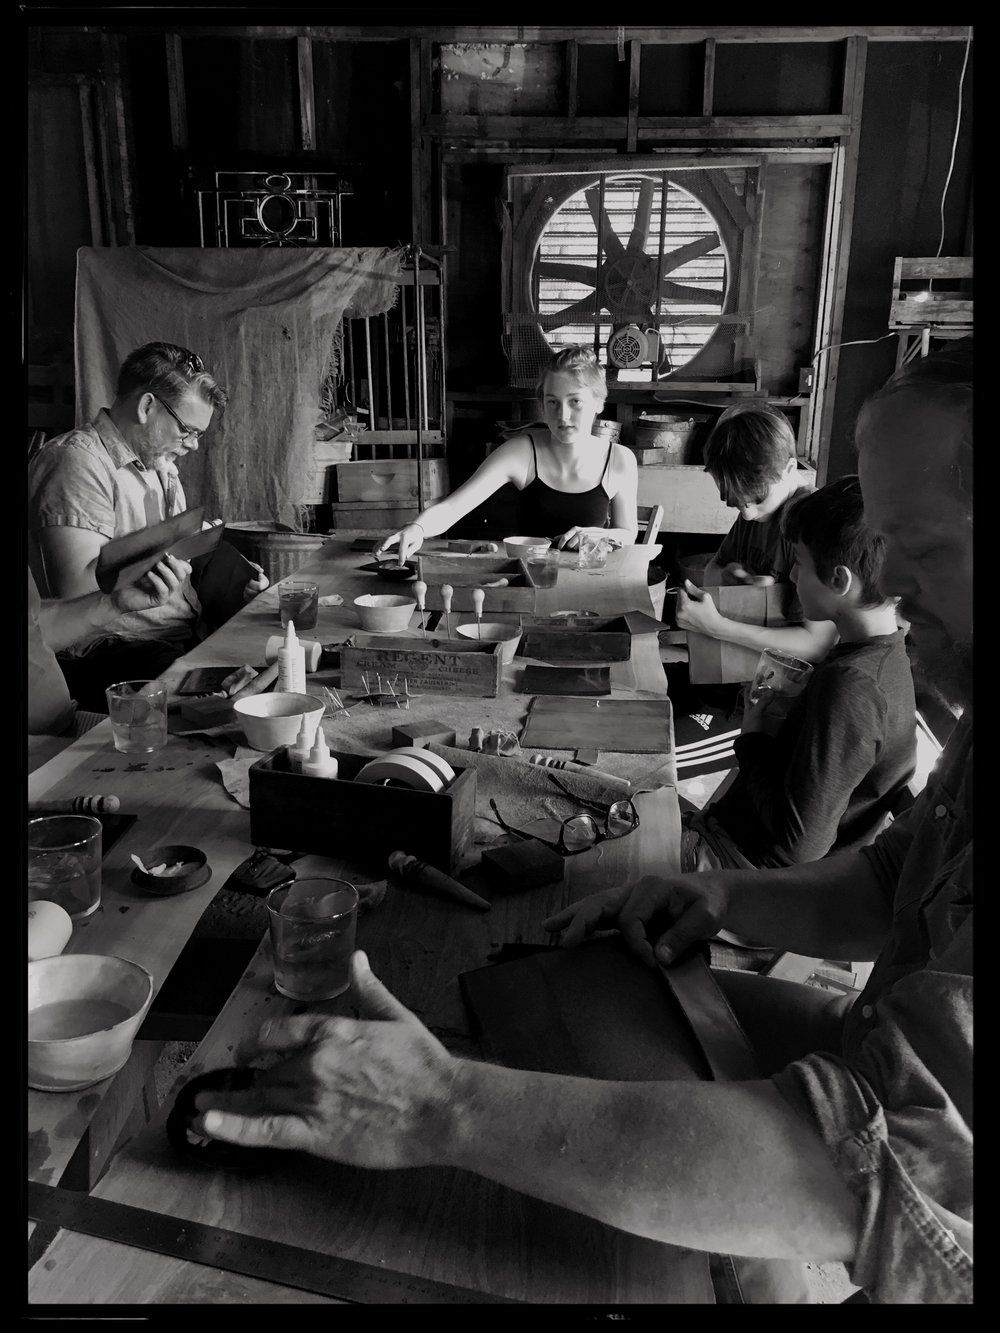 Fish & Bicycle Hand Leather Smithing - photo Juliette Hermant -8